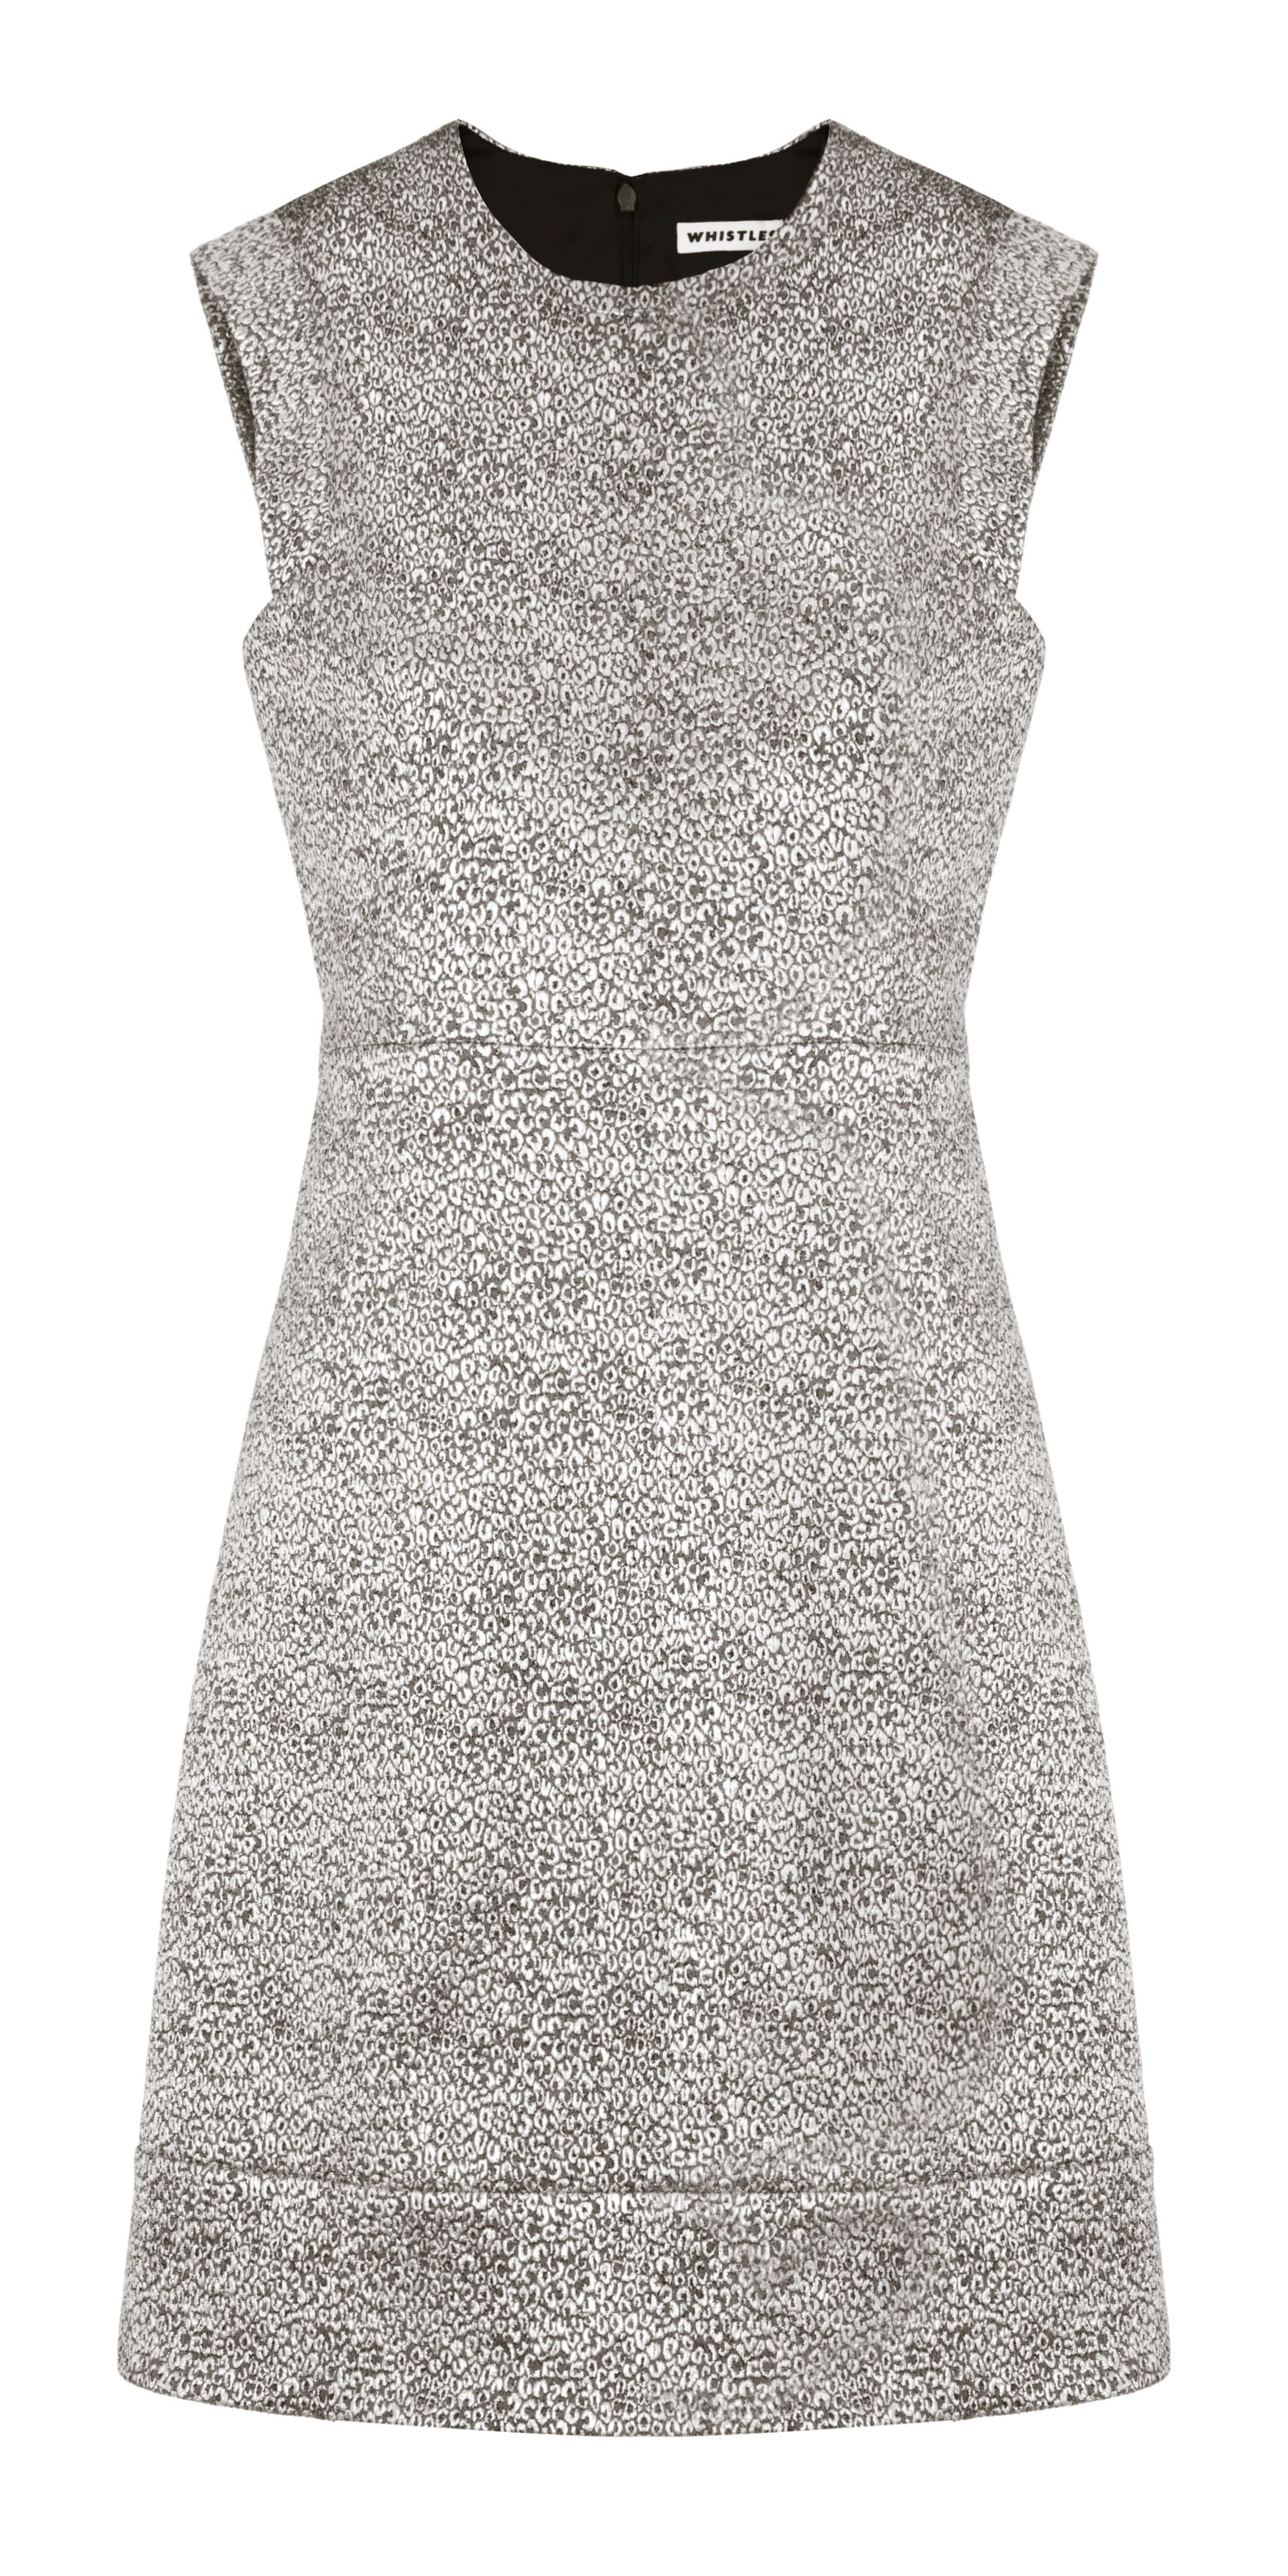 Lili metallic jacquard dress